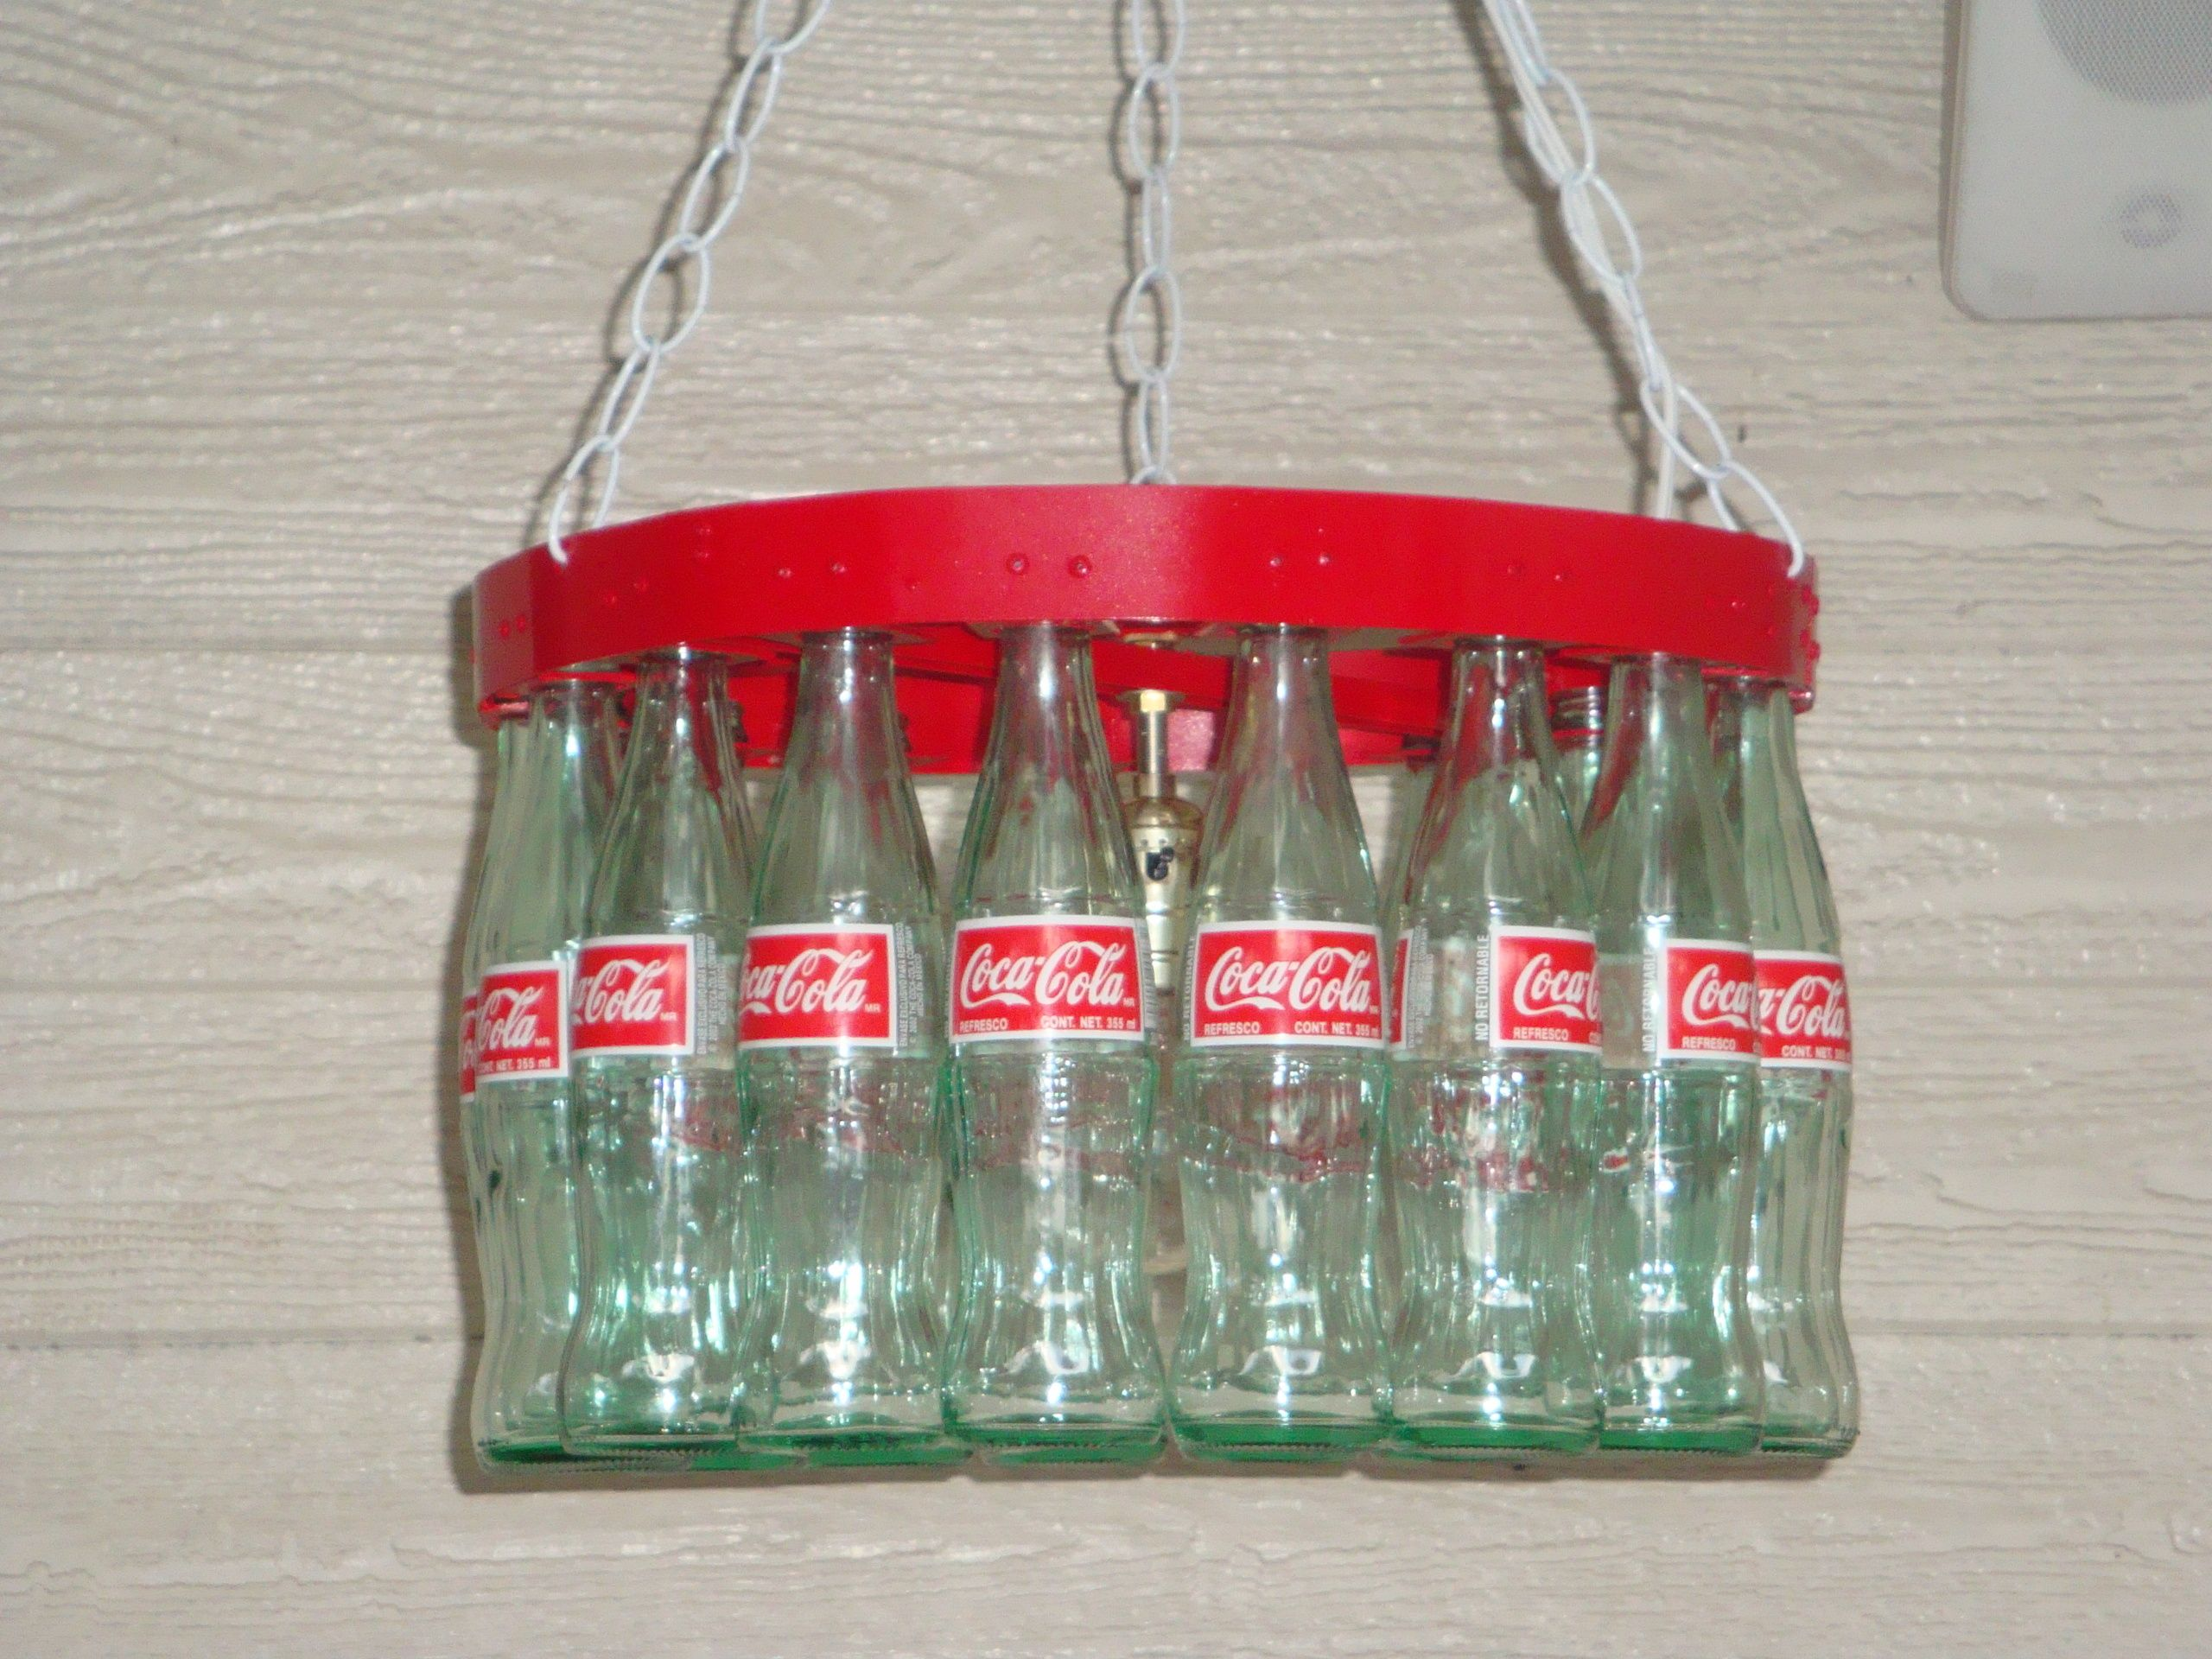 Coca cola bottle chandelier such an interesting way to recycle coca cola bottle chandelier such an interesting way to recycle old coke bottles funky room design pinterest bottle chandelier coca cola bottles arubaitofo Images